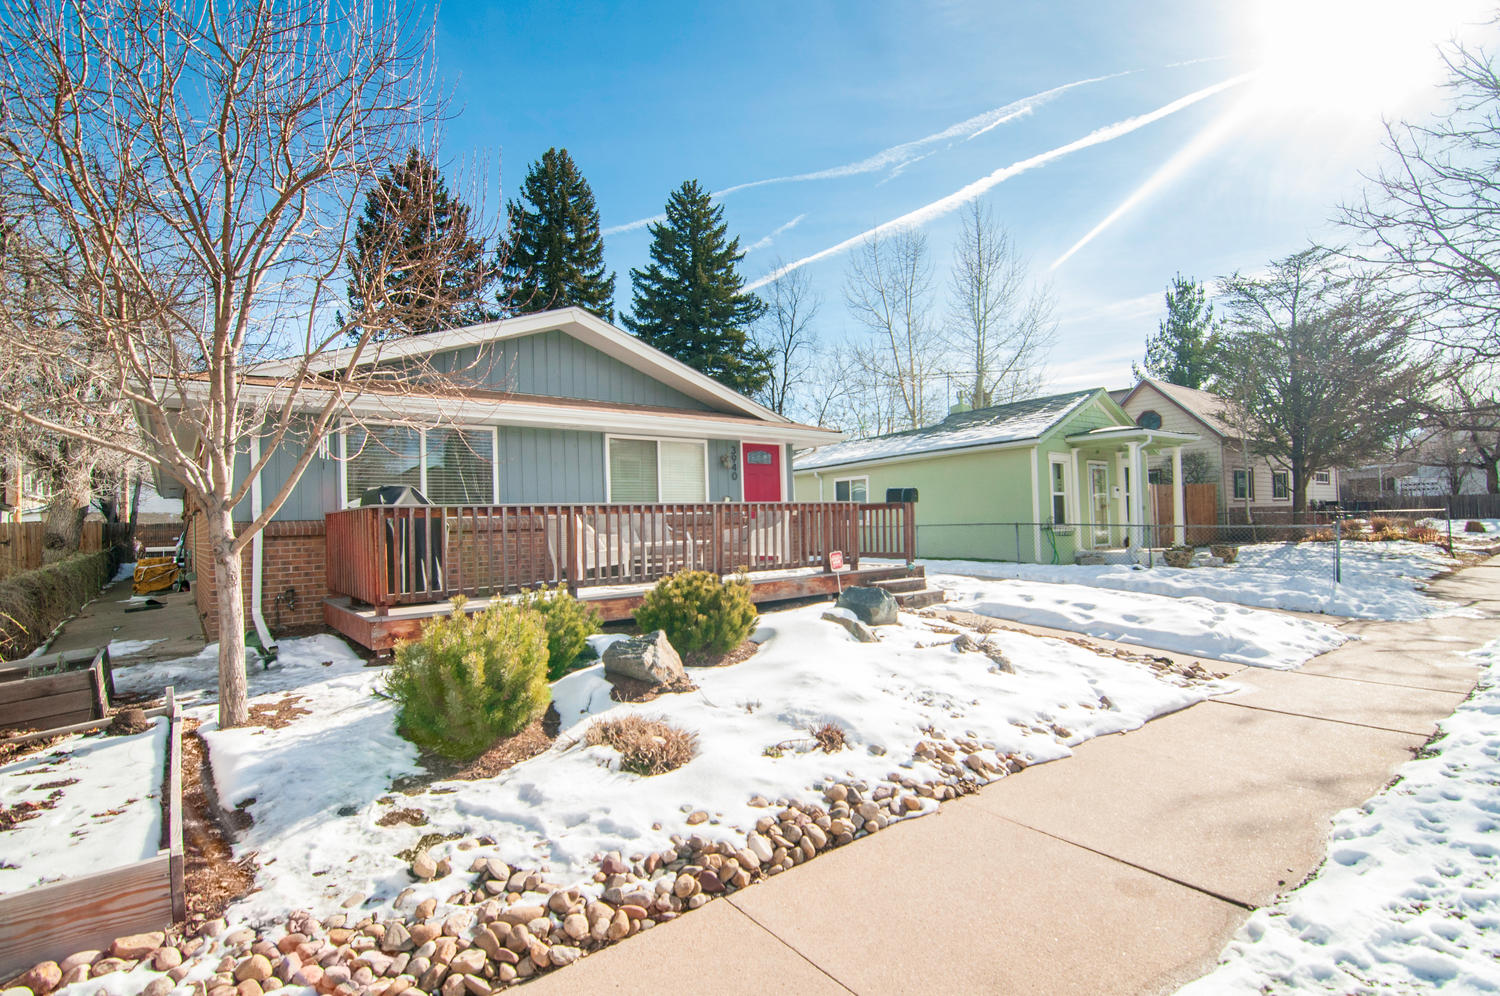 Single Family Home for Sale at Cozy cottage meets urban style 3940 Osceola St Denver, Colorado 80212 United States